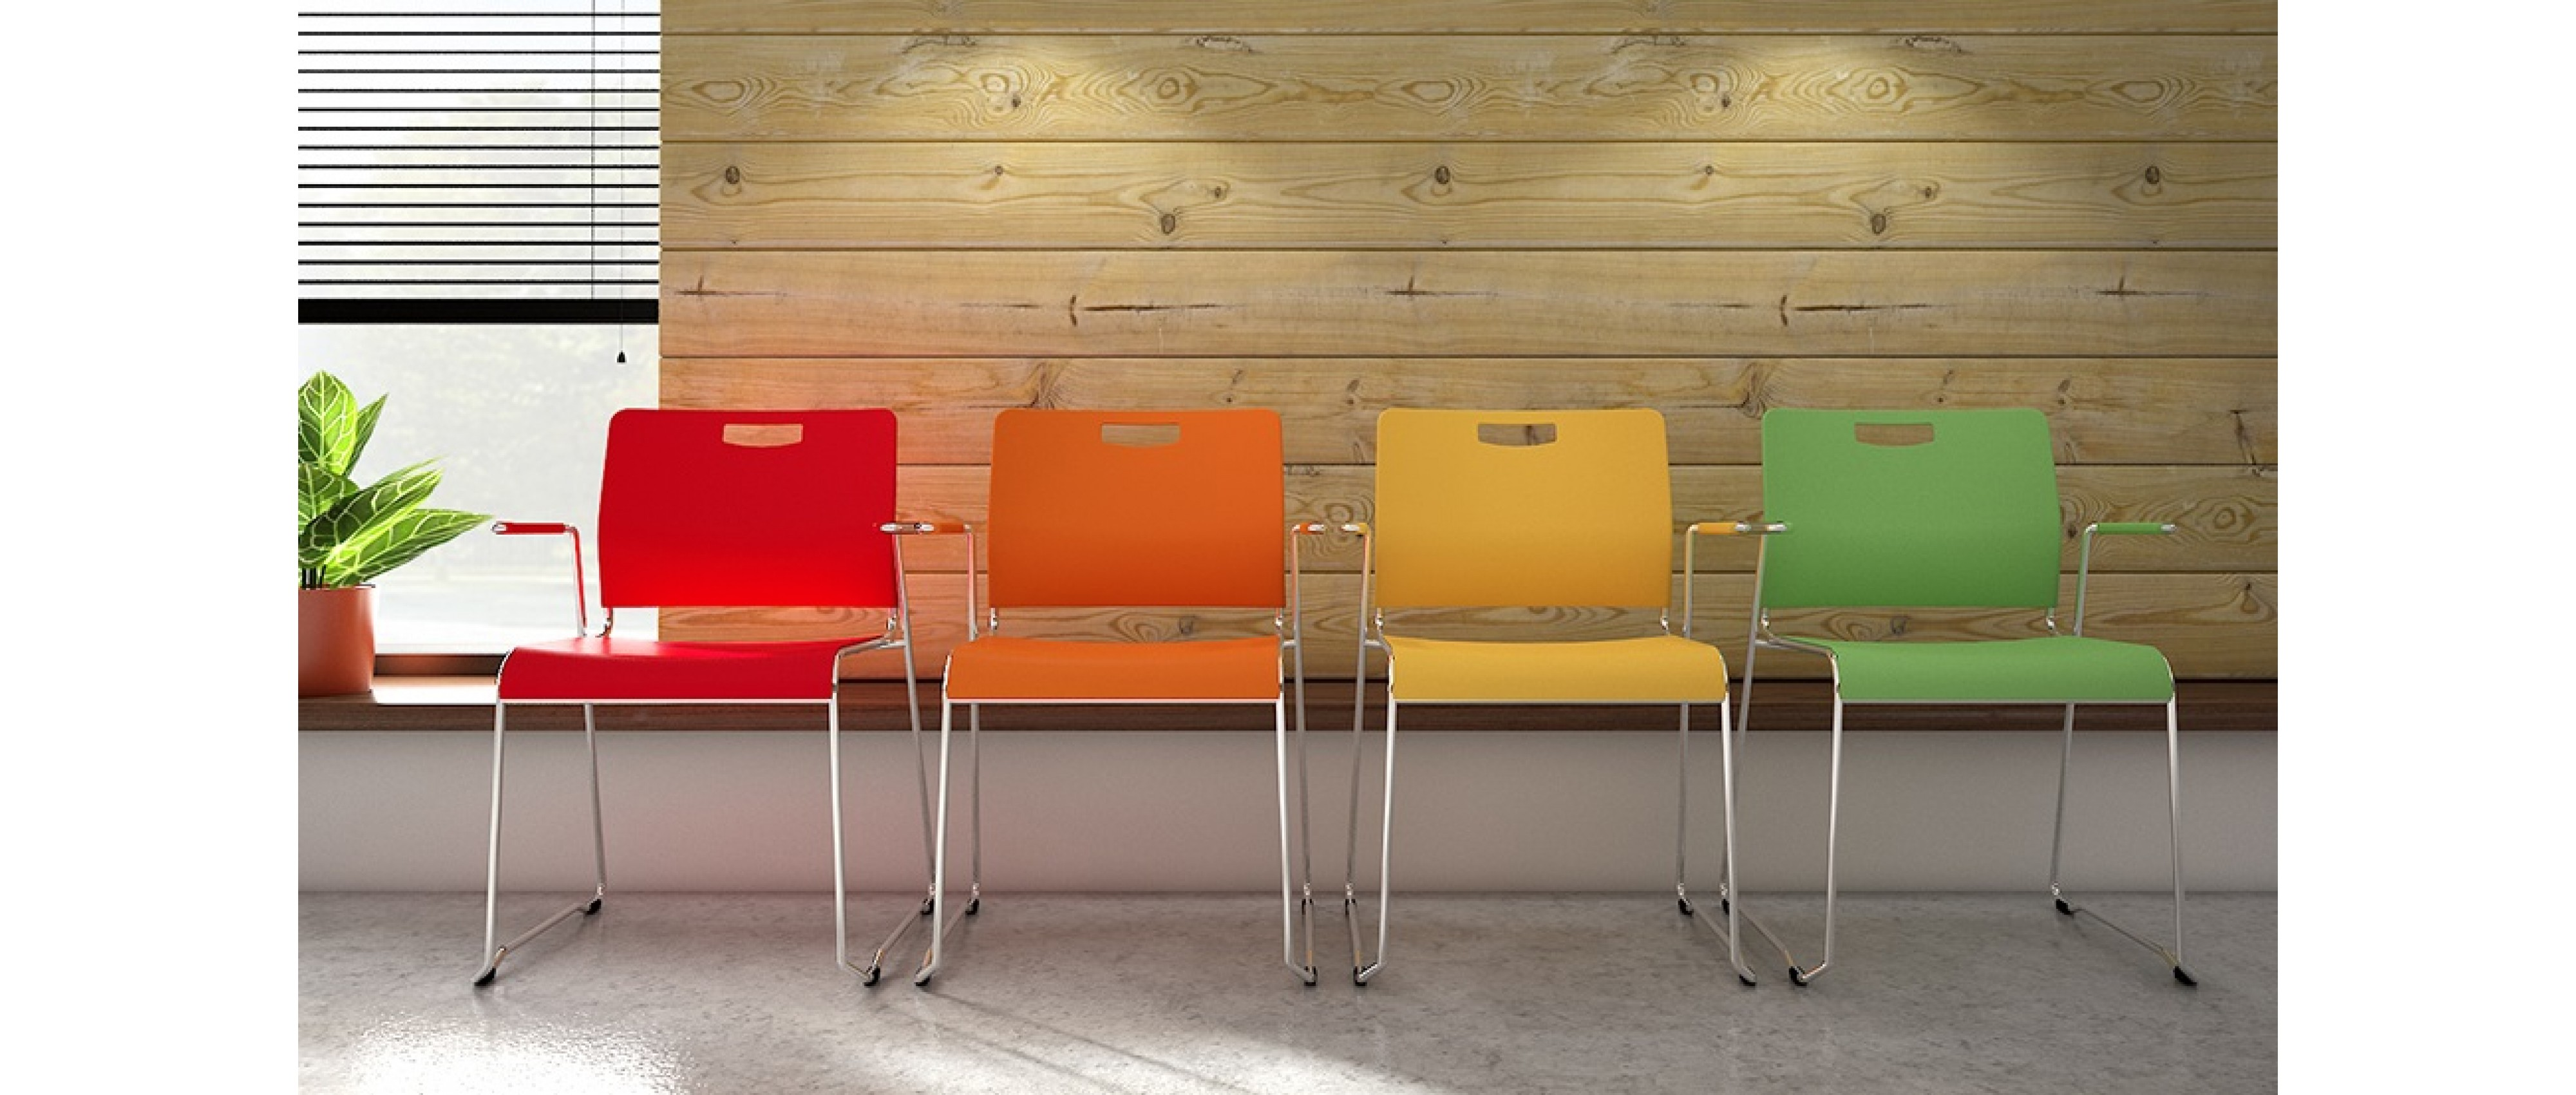 Lumo Chairs